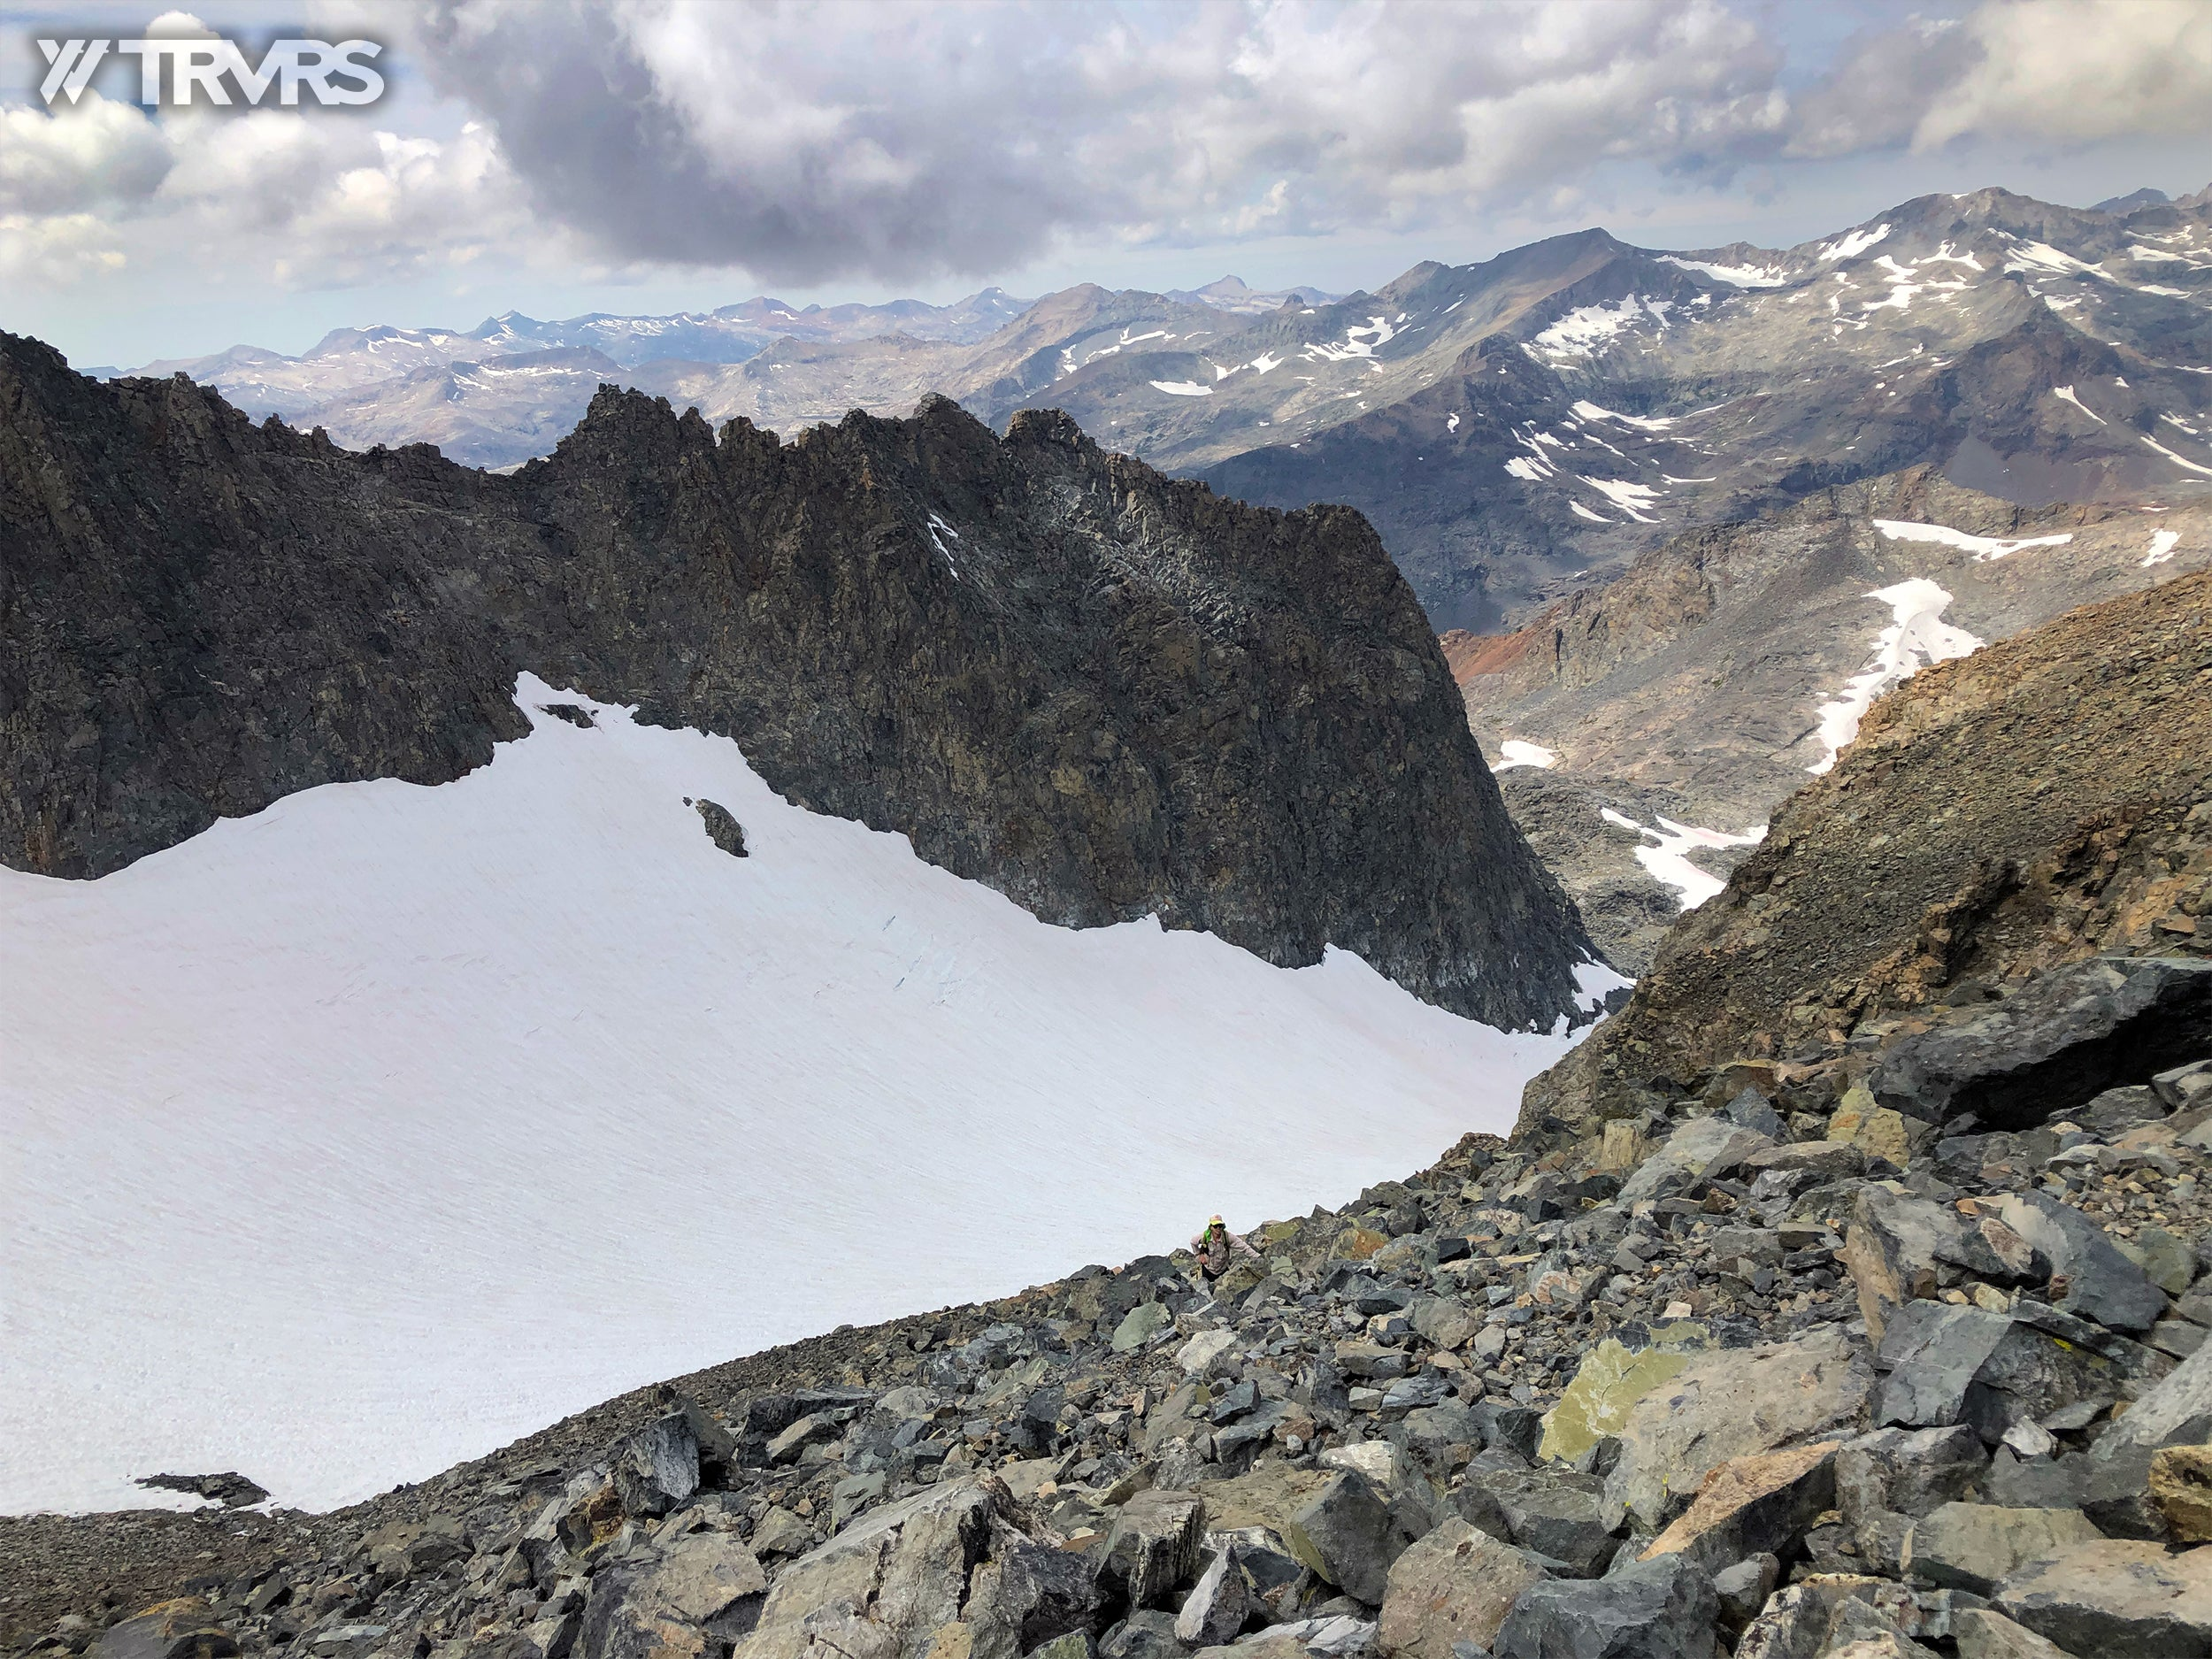 Looking down the Southwest Slope of Banner Peak  - Ritter-Banner Saddle, Lake Catherine, Glacier Pass, Thousand Island Lake, River Trail, Pacific Crest Trail, Middle Fork, Agnew Meadow, Ansel Adams Wilderness, Mammoth Lakes, Sierra Nevada | TRVRS Apparel